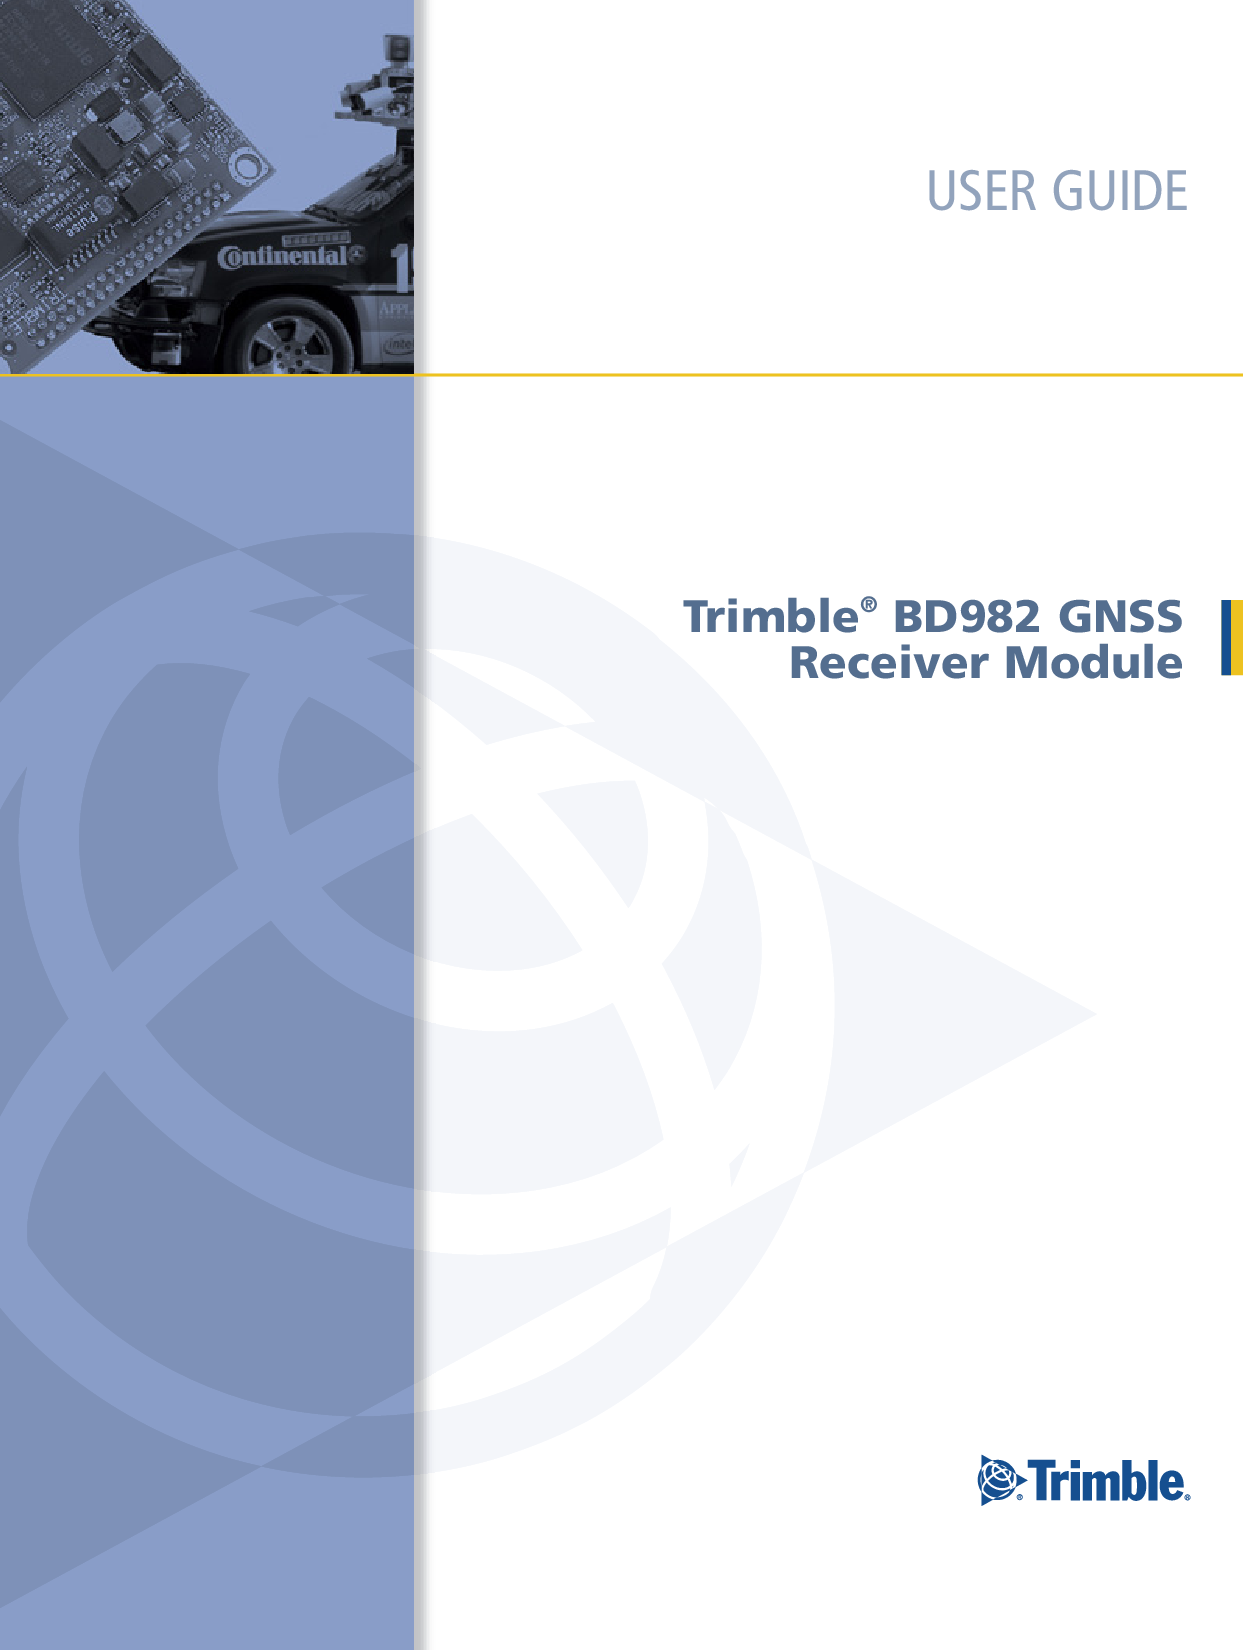 Trimble BD982 GNSS Receiver Module 291 manual